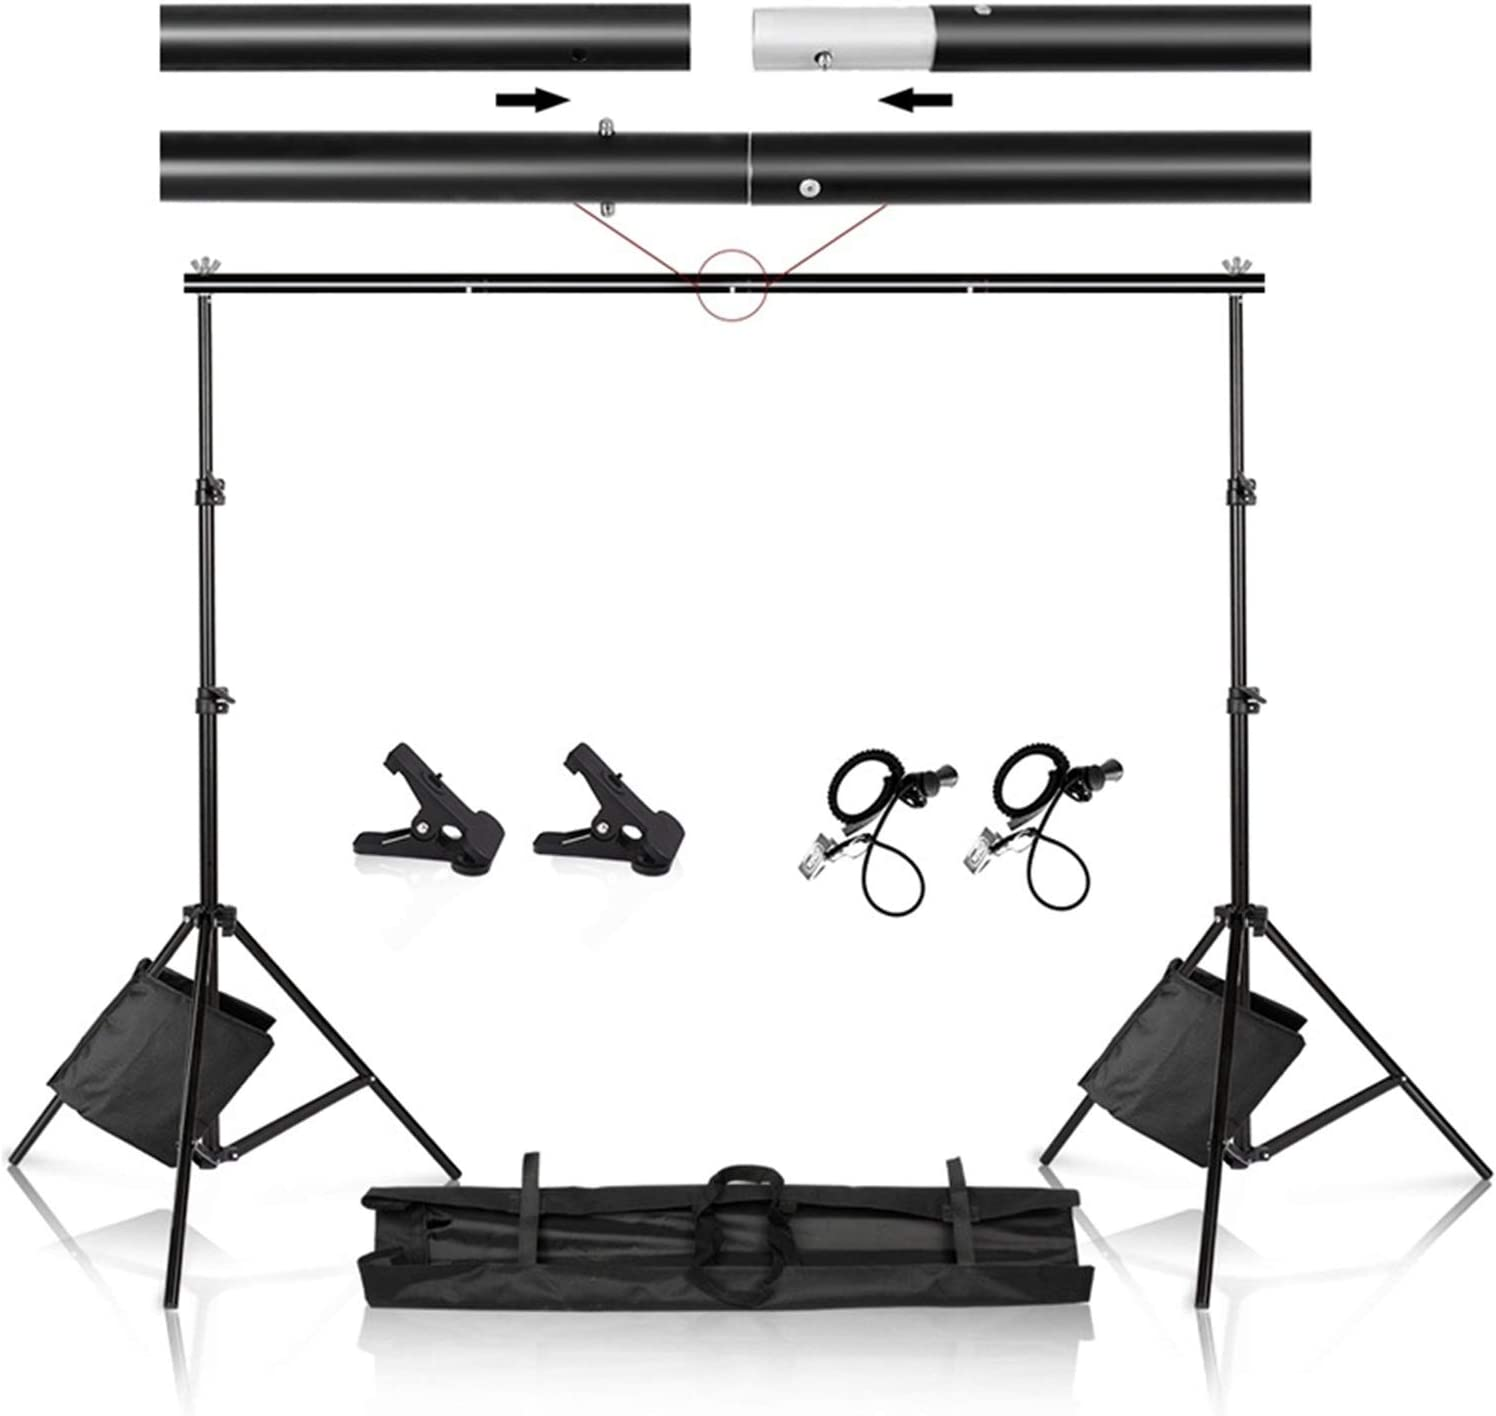 Zhice Photography Studio Photo Video B Stand Backdrop Frame Tall 2021new shipping free All stores are sold